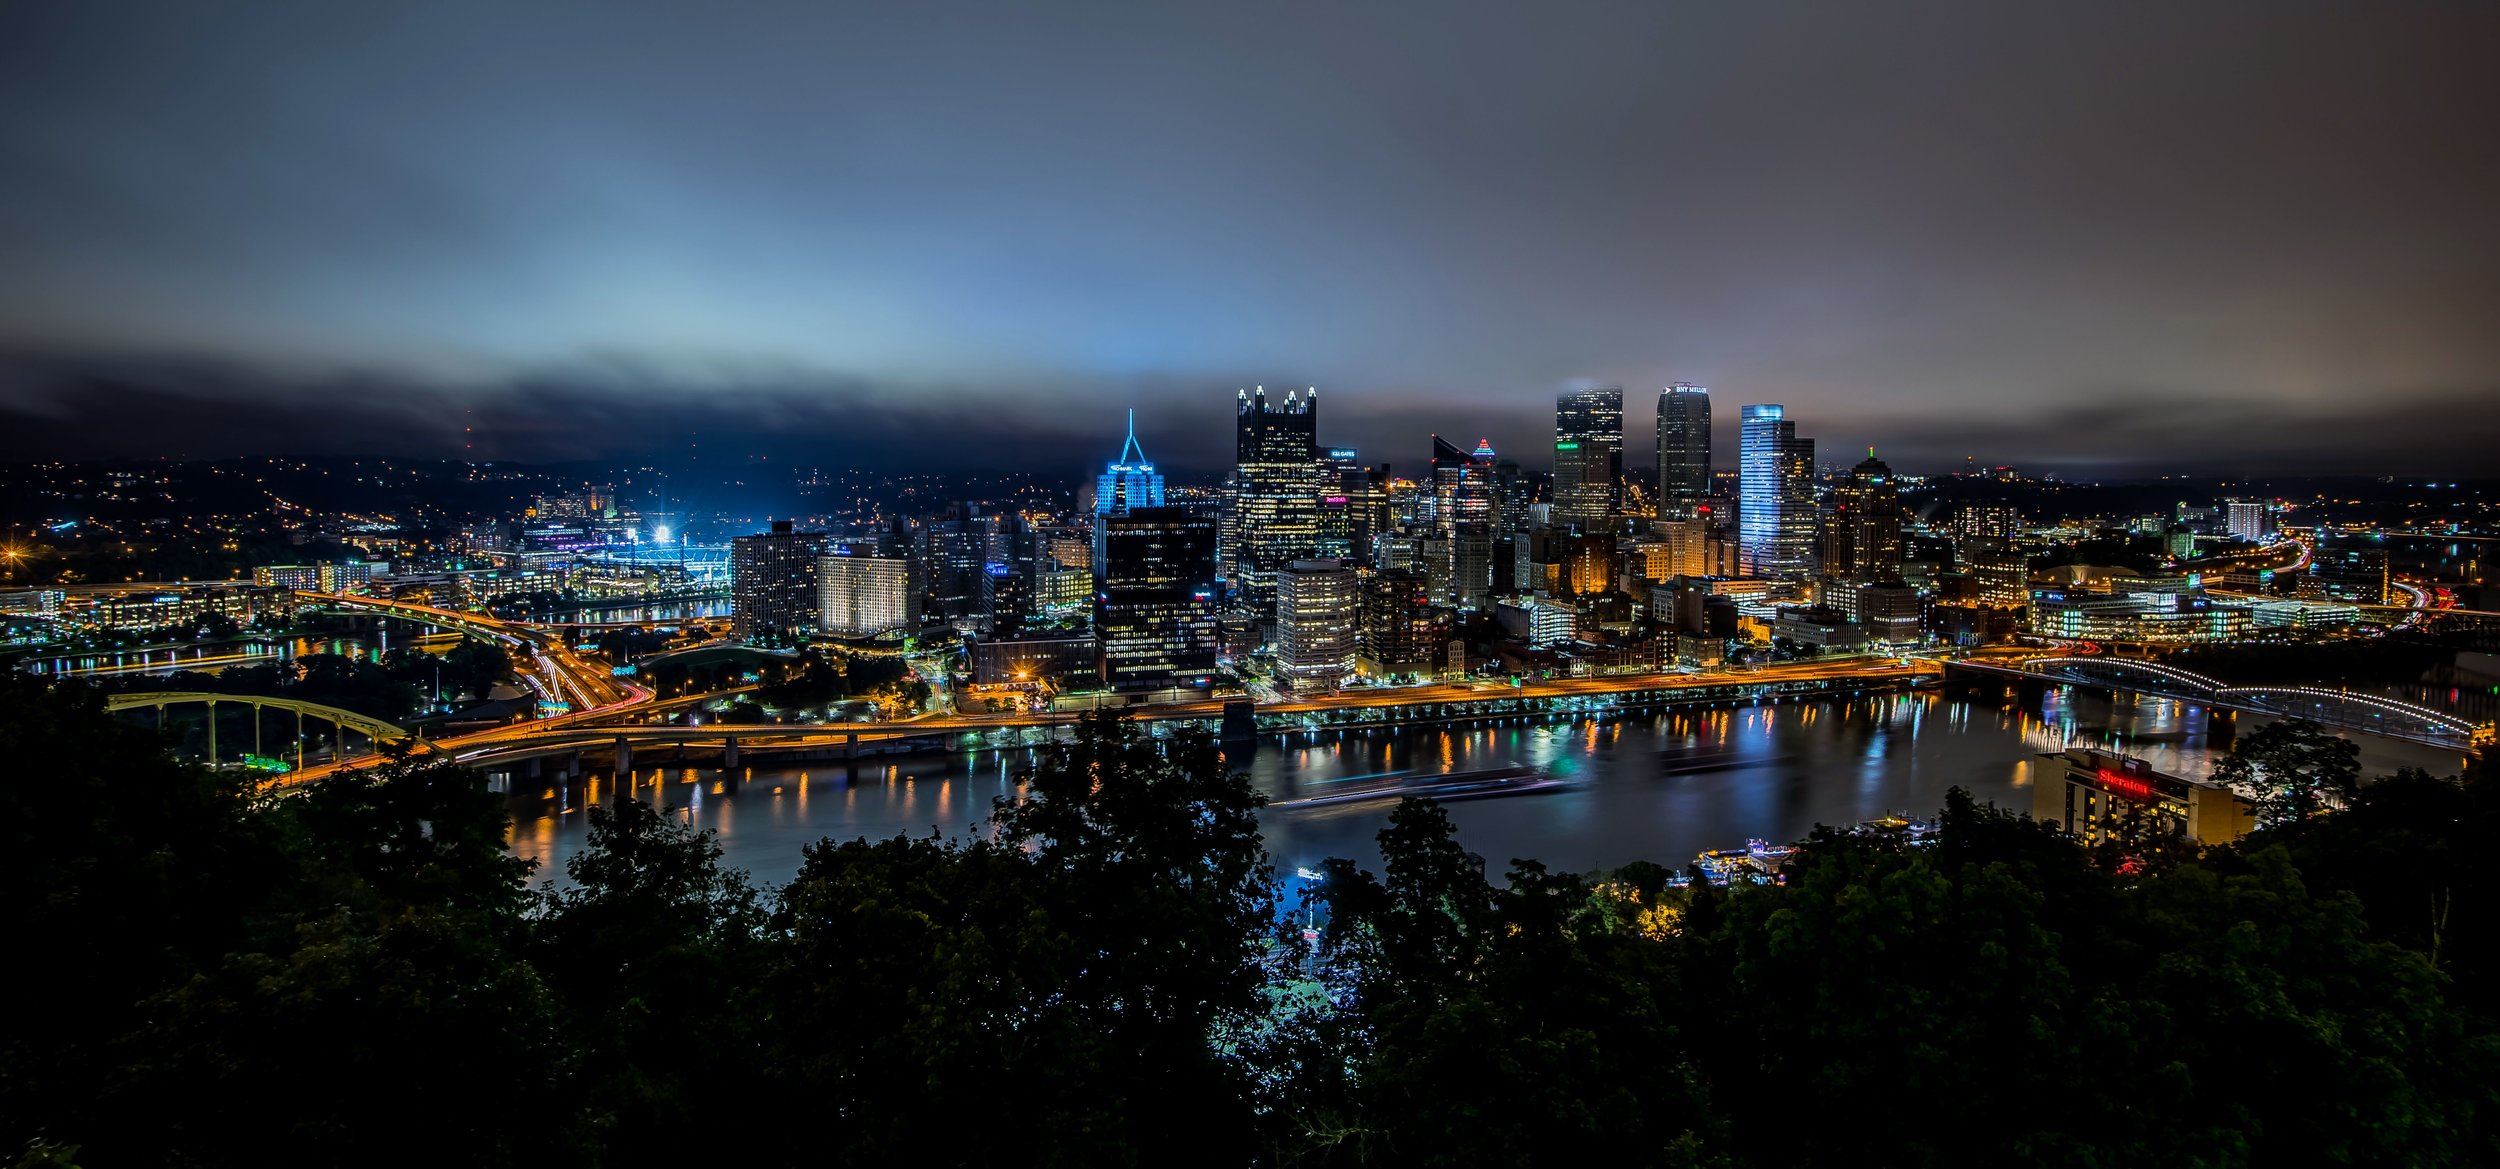 Pittsburgh Downtown from Grandview Ave (click the image to view full size)